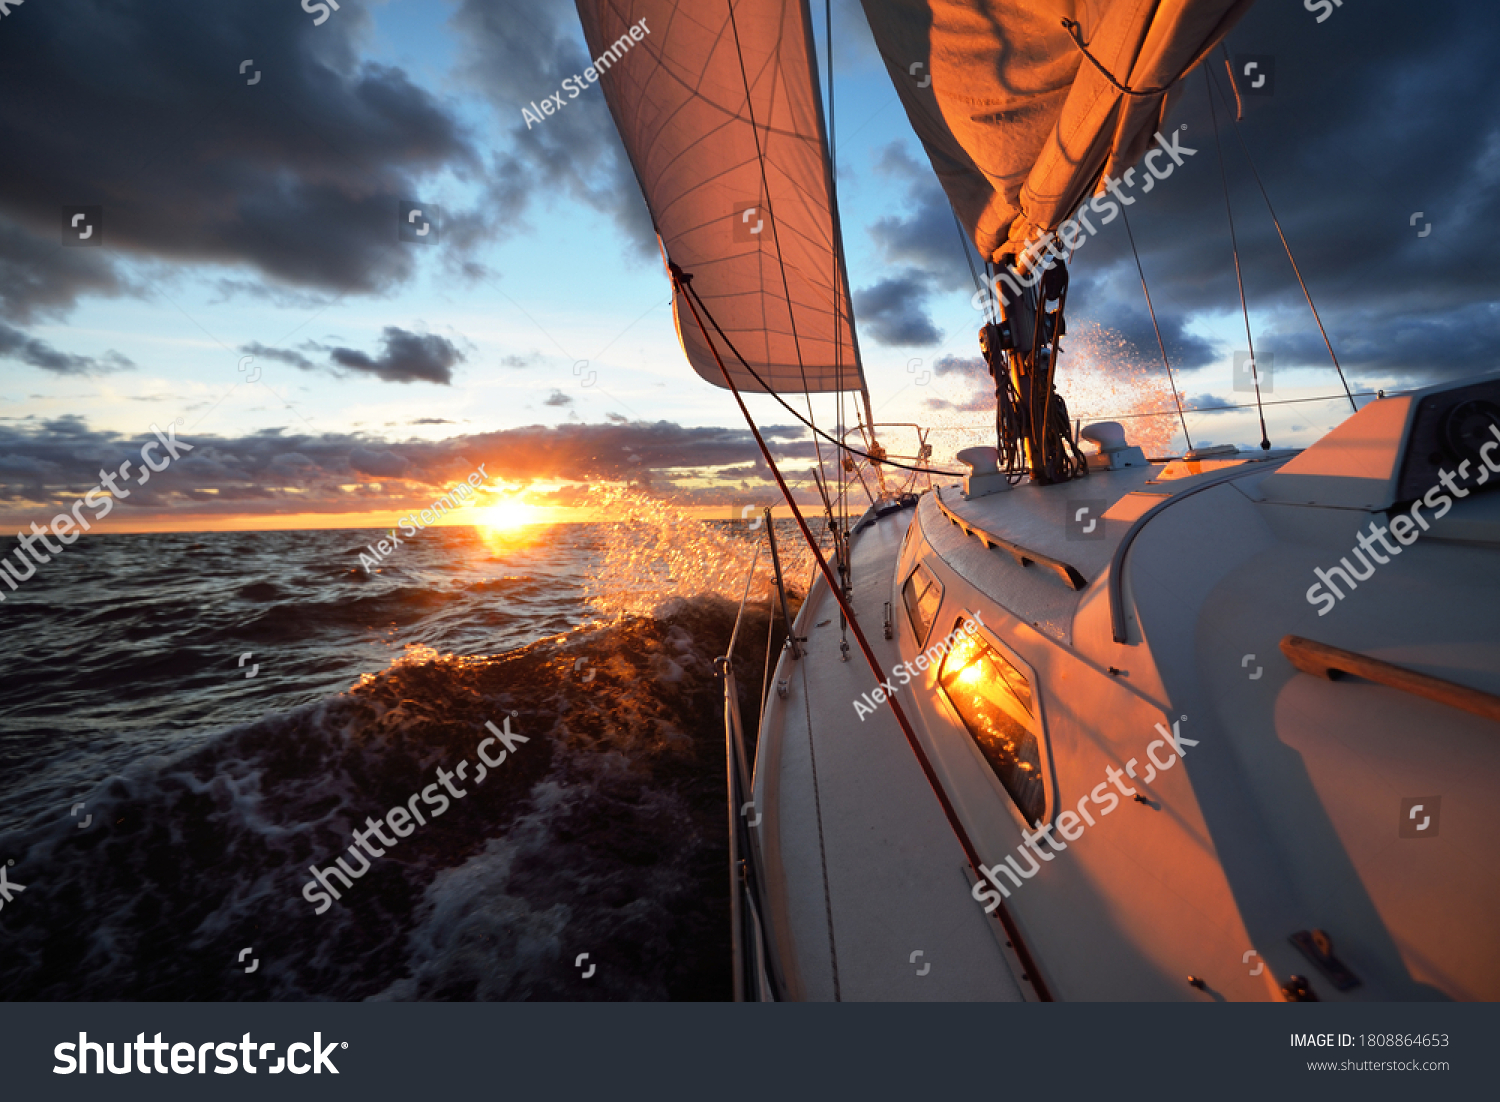 Yacht sailing in an open sea at sunset. Close-up view of the deck, mast and sails. Clear sky after the rain, dramatic glowing clouds, golden sunlight, waves and water splashes, cyclone. Epic seascape #1808864653